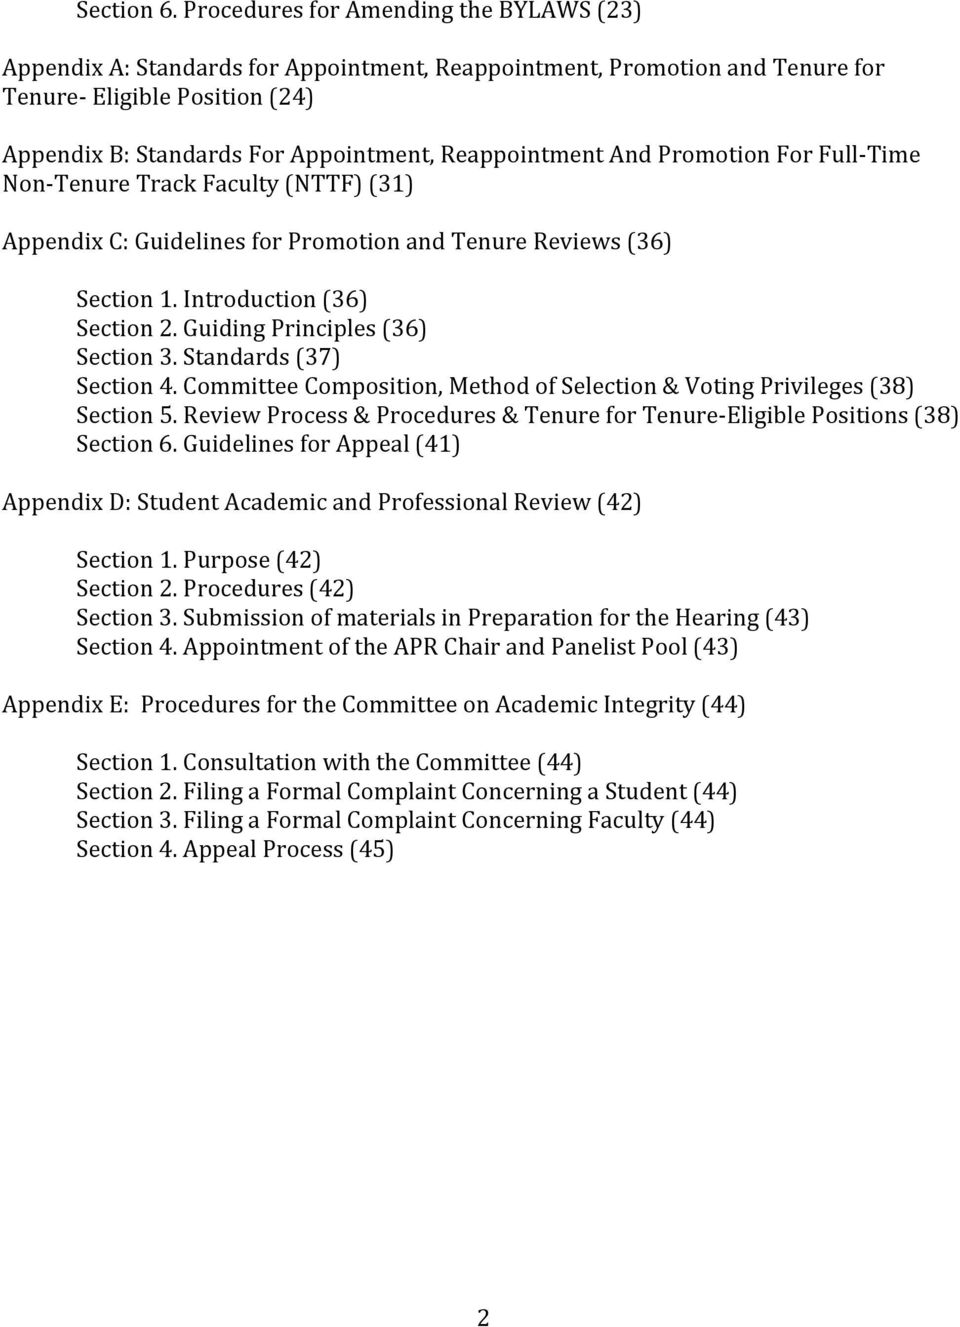 Reappointment And Promotion For Full- Time Non- Tenure Track Faculty (NTTF) (31) Appendix C: Guidelines for Promotion and Tenure Reviews (36) Section 1. Introduction (36) Section 2.